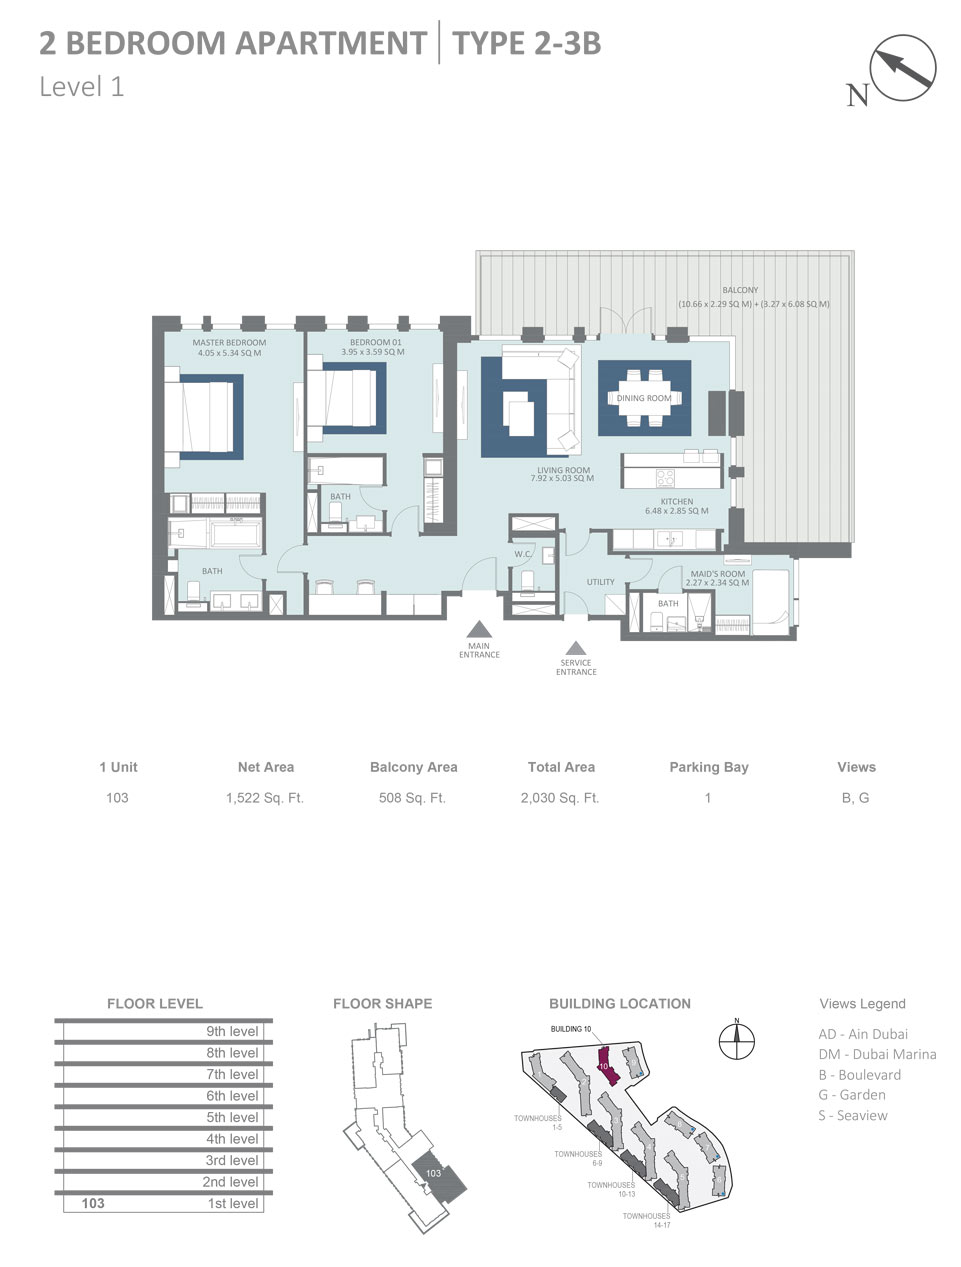 Building 10 - 2 Bedroom Apartment Type 3B, Level 1, Size 2030  sq. ft.